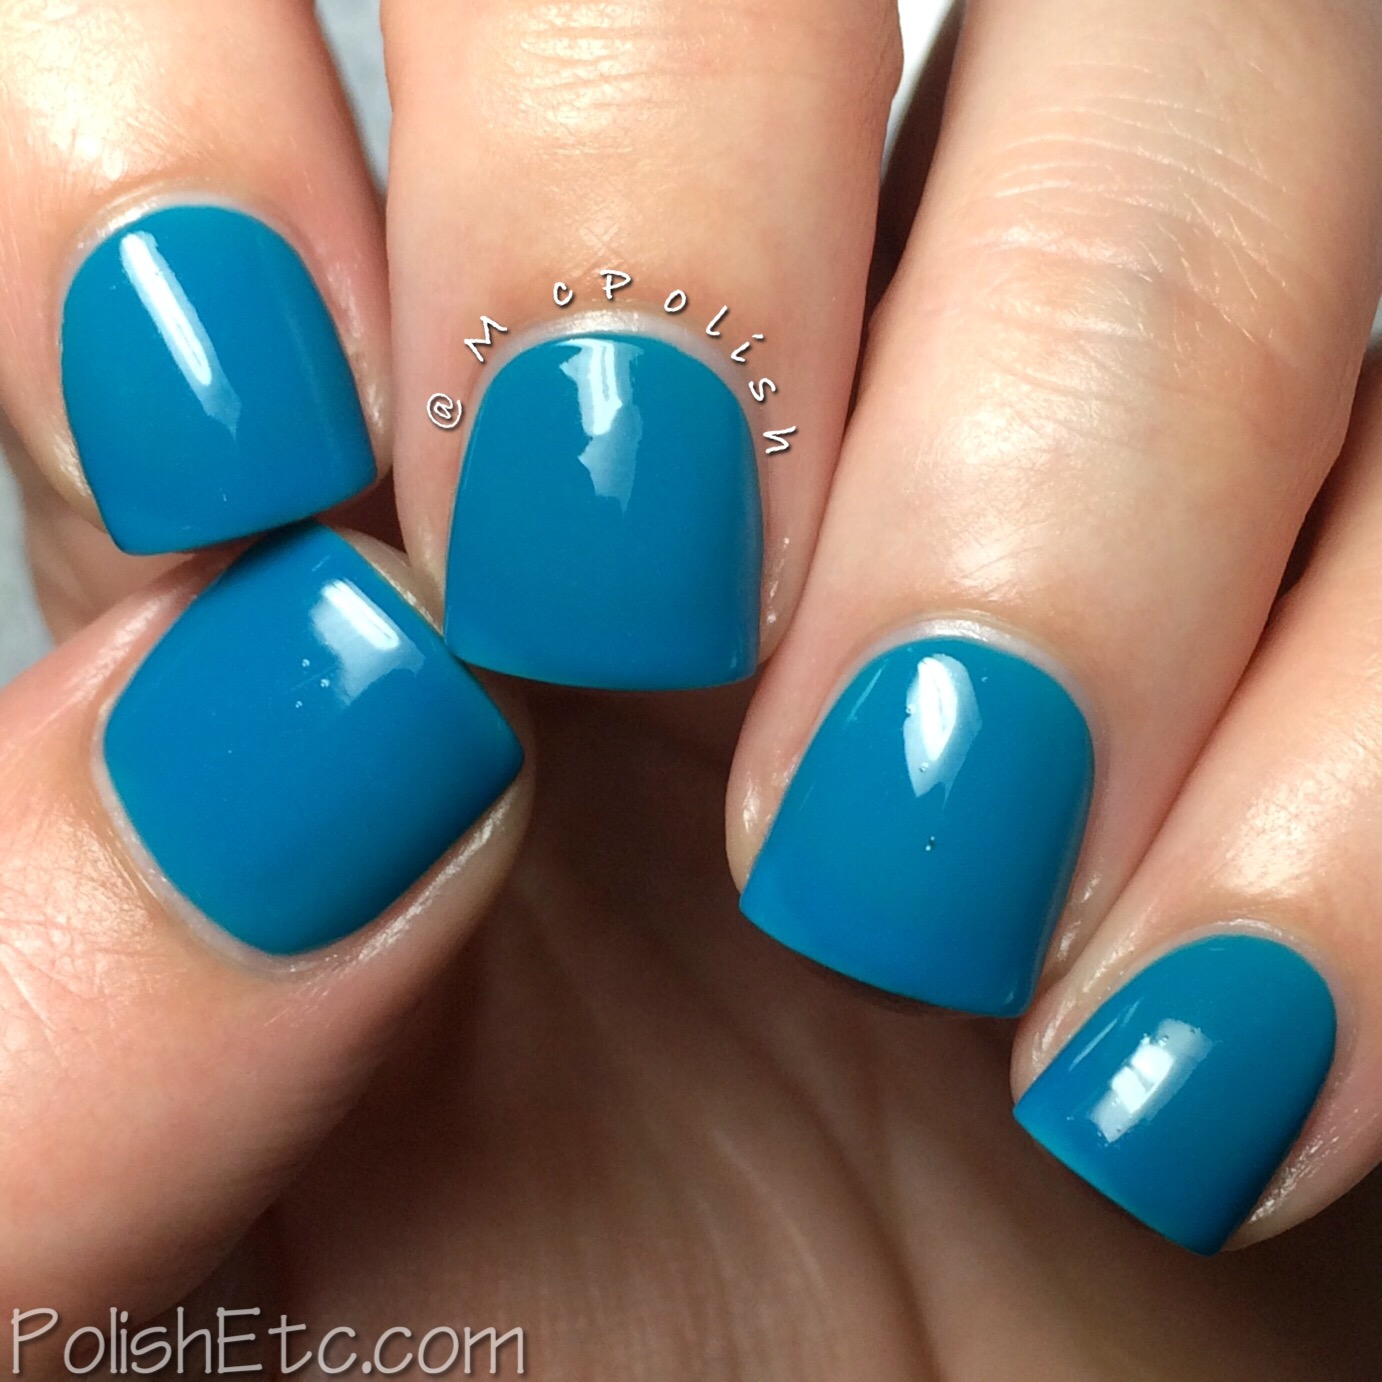 most popular nail polish color for spring 2015 great photo blog